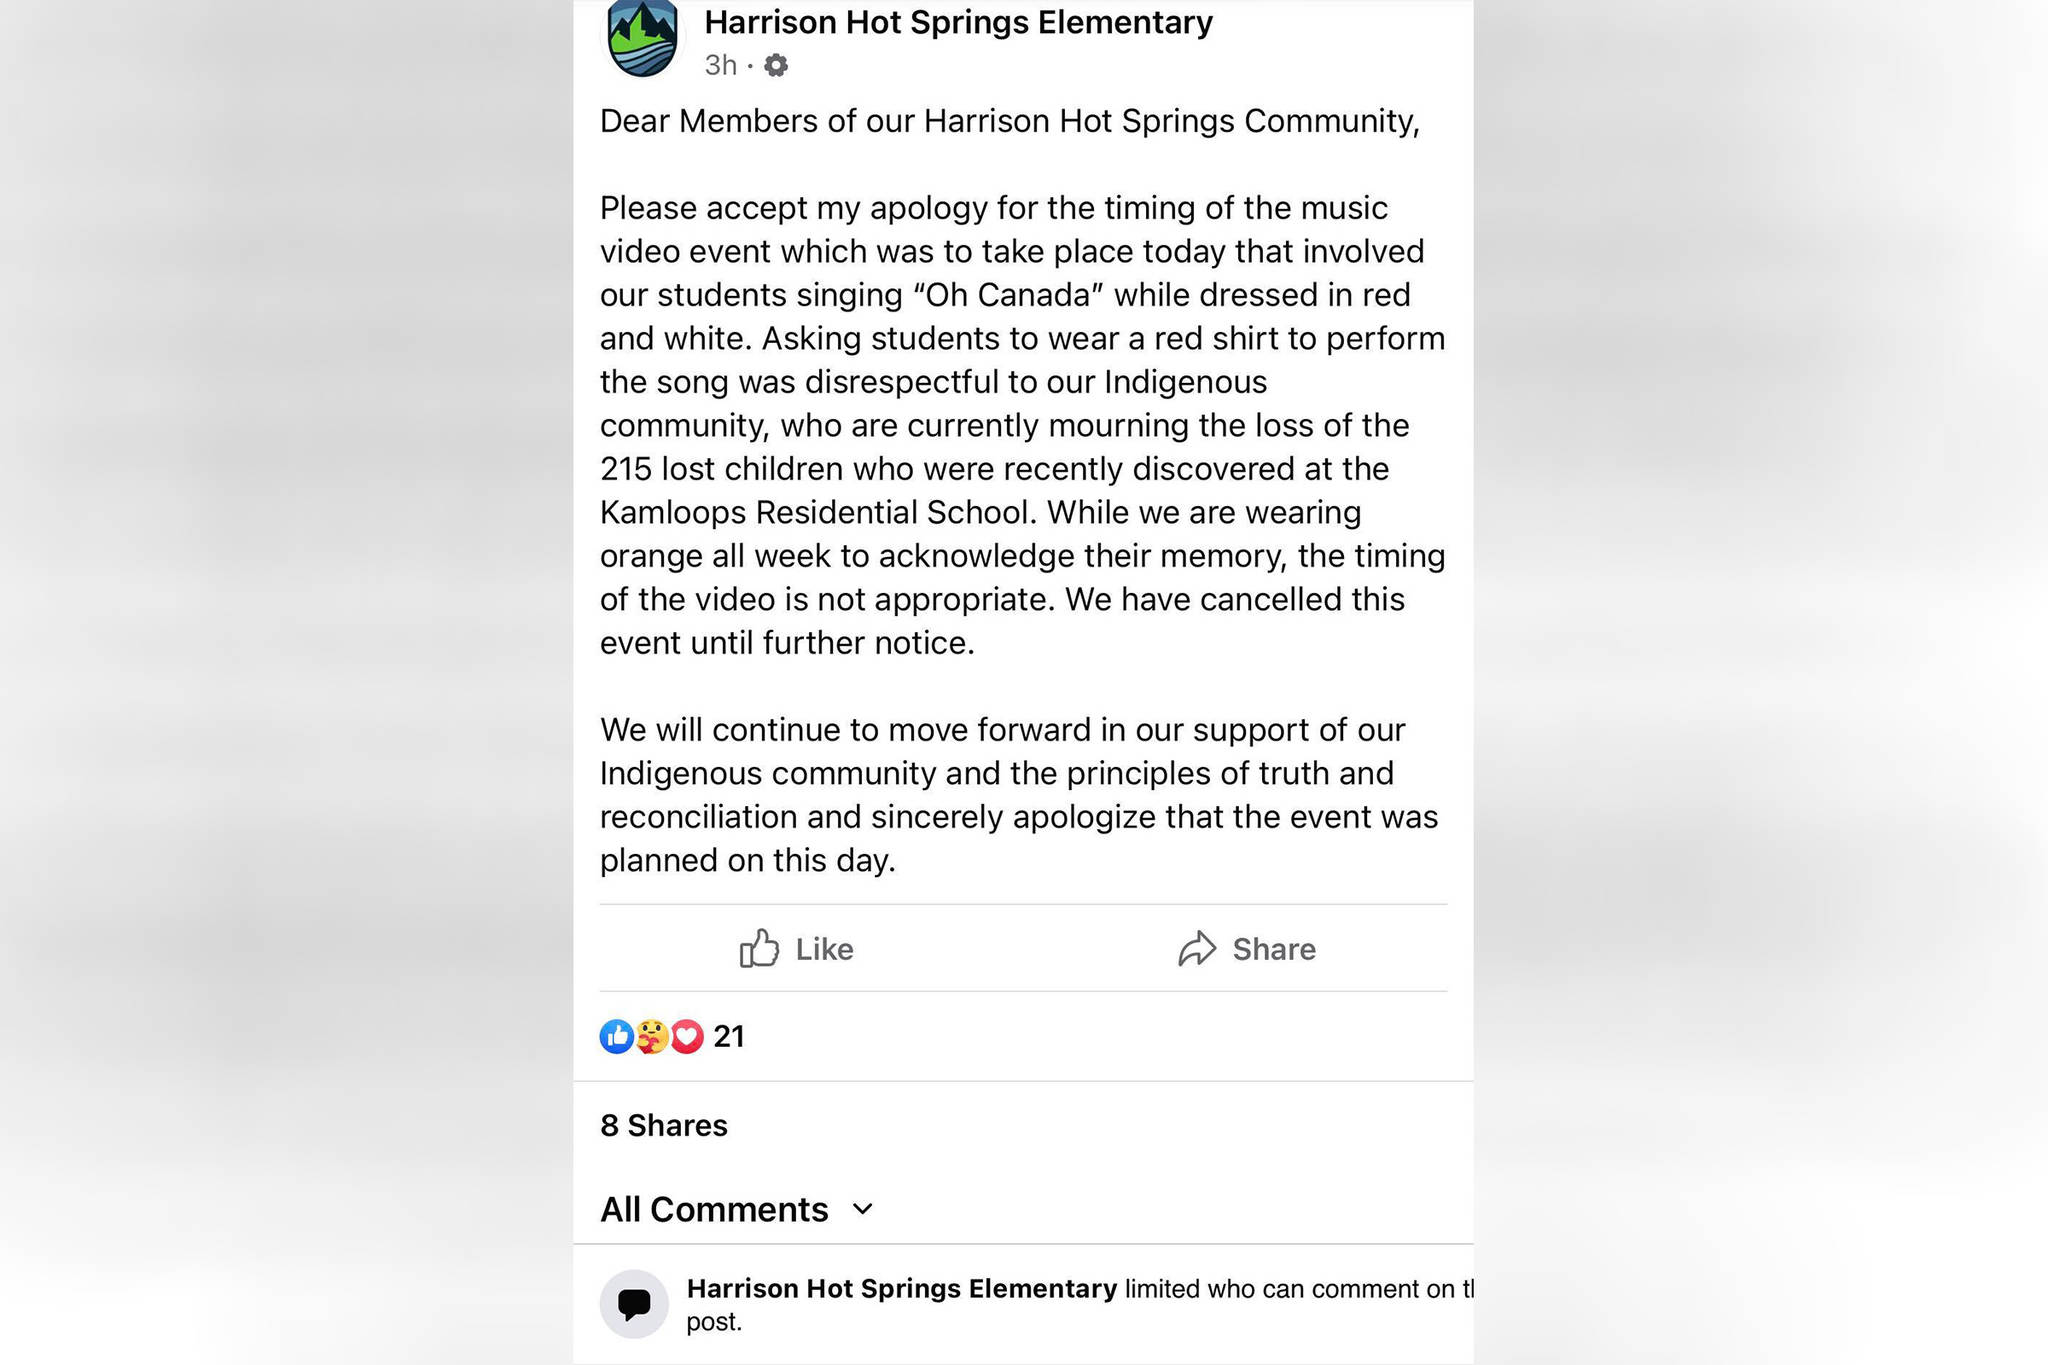 Harrison Hot Springs Elementary School issued this apology following the announcement of plans to film a music video of students wearing red and white, singing 'O Canada' for the village's upcoming virtual Canada Day celebration. The filming has since been canceled until further notice. (Facebook/Harrison Hot Springs Elementary